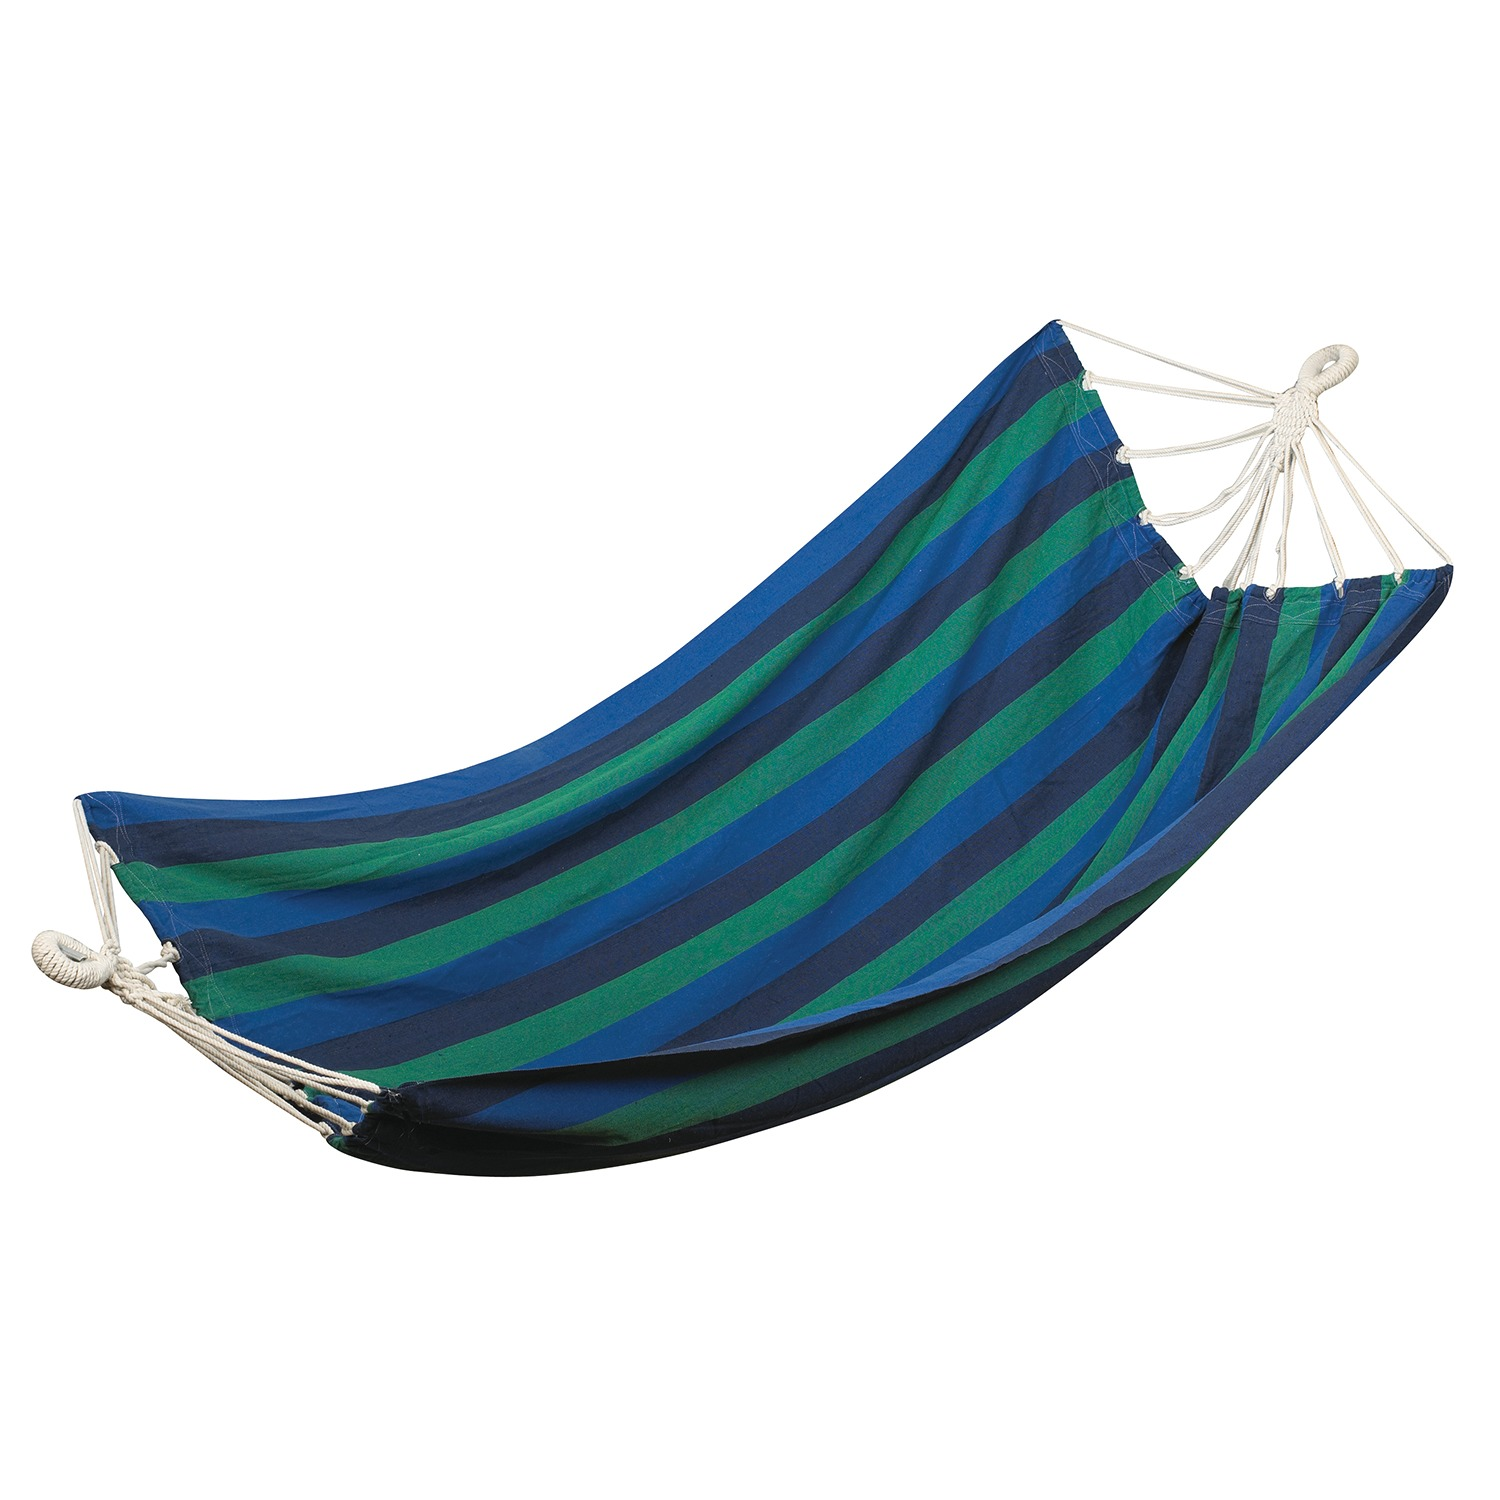 Stansport Balboa Packable Cotton Hammock Double 79 X 57 Walmart Com Walmart Com